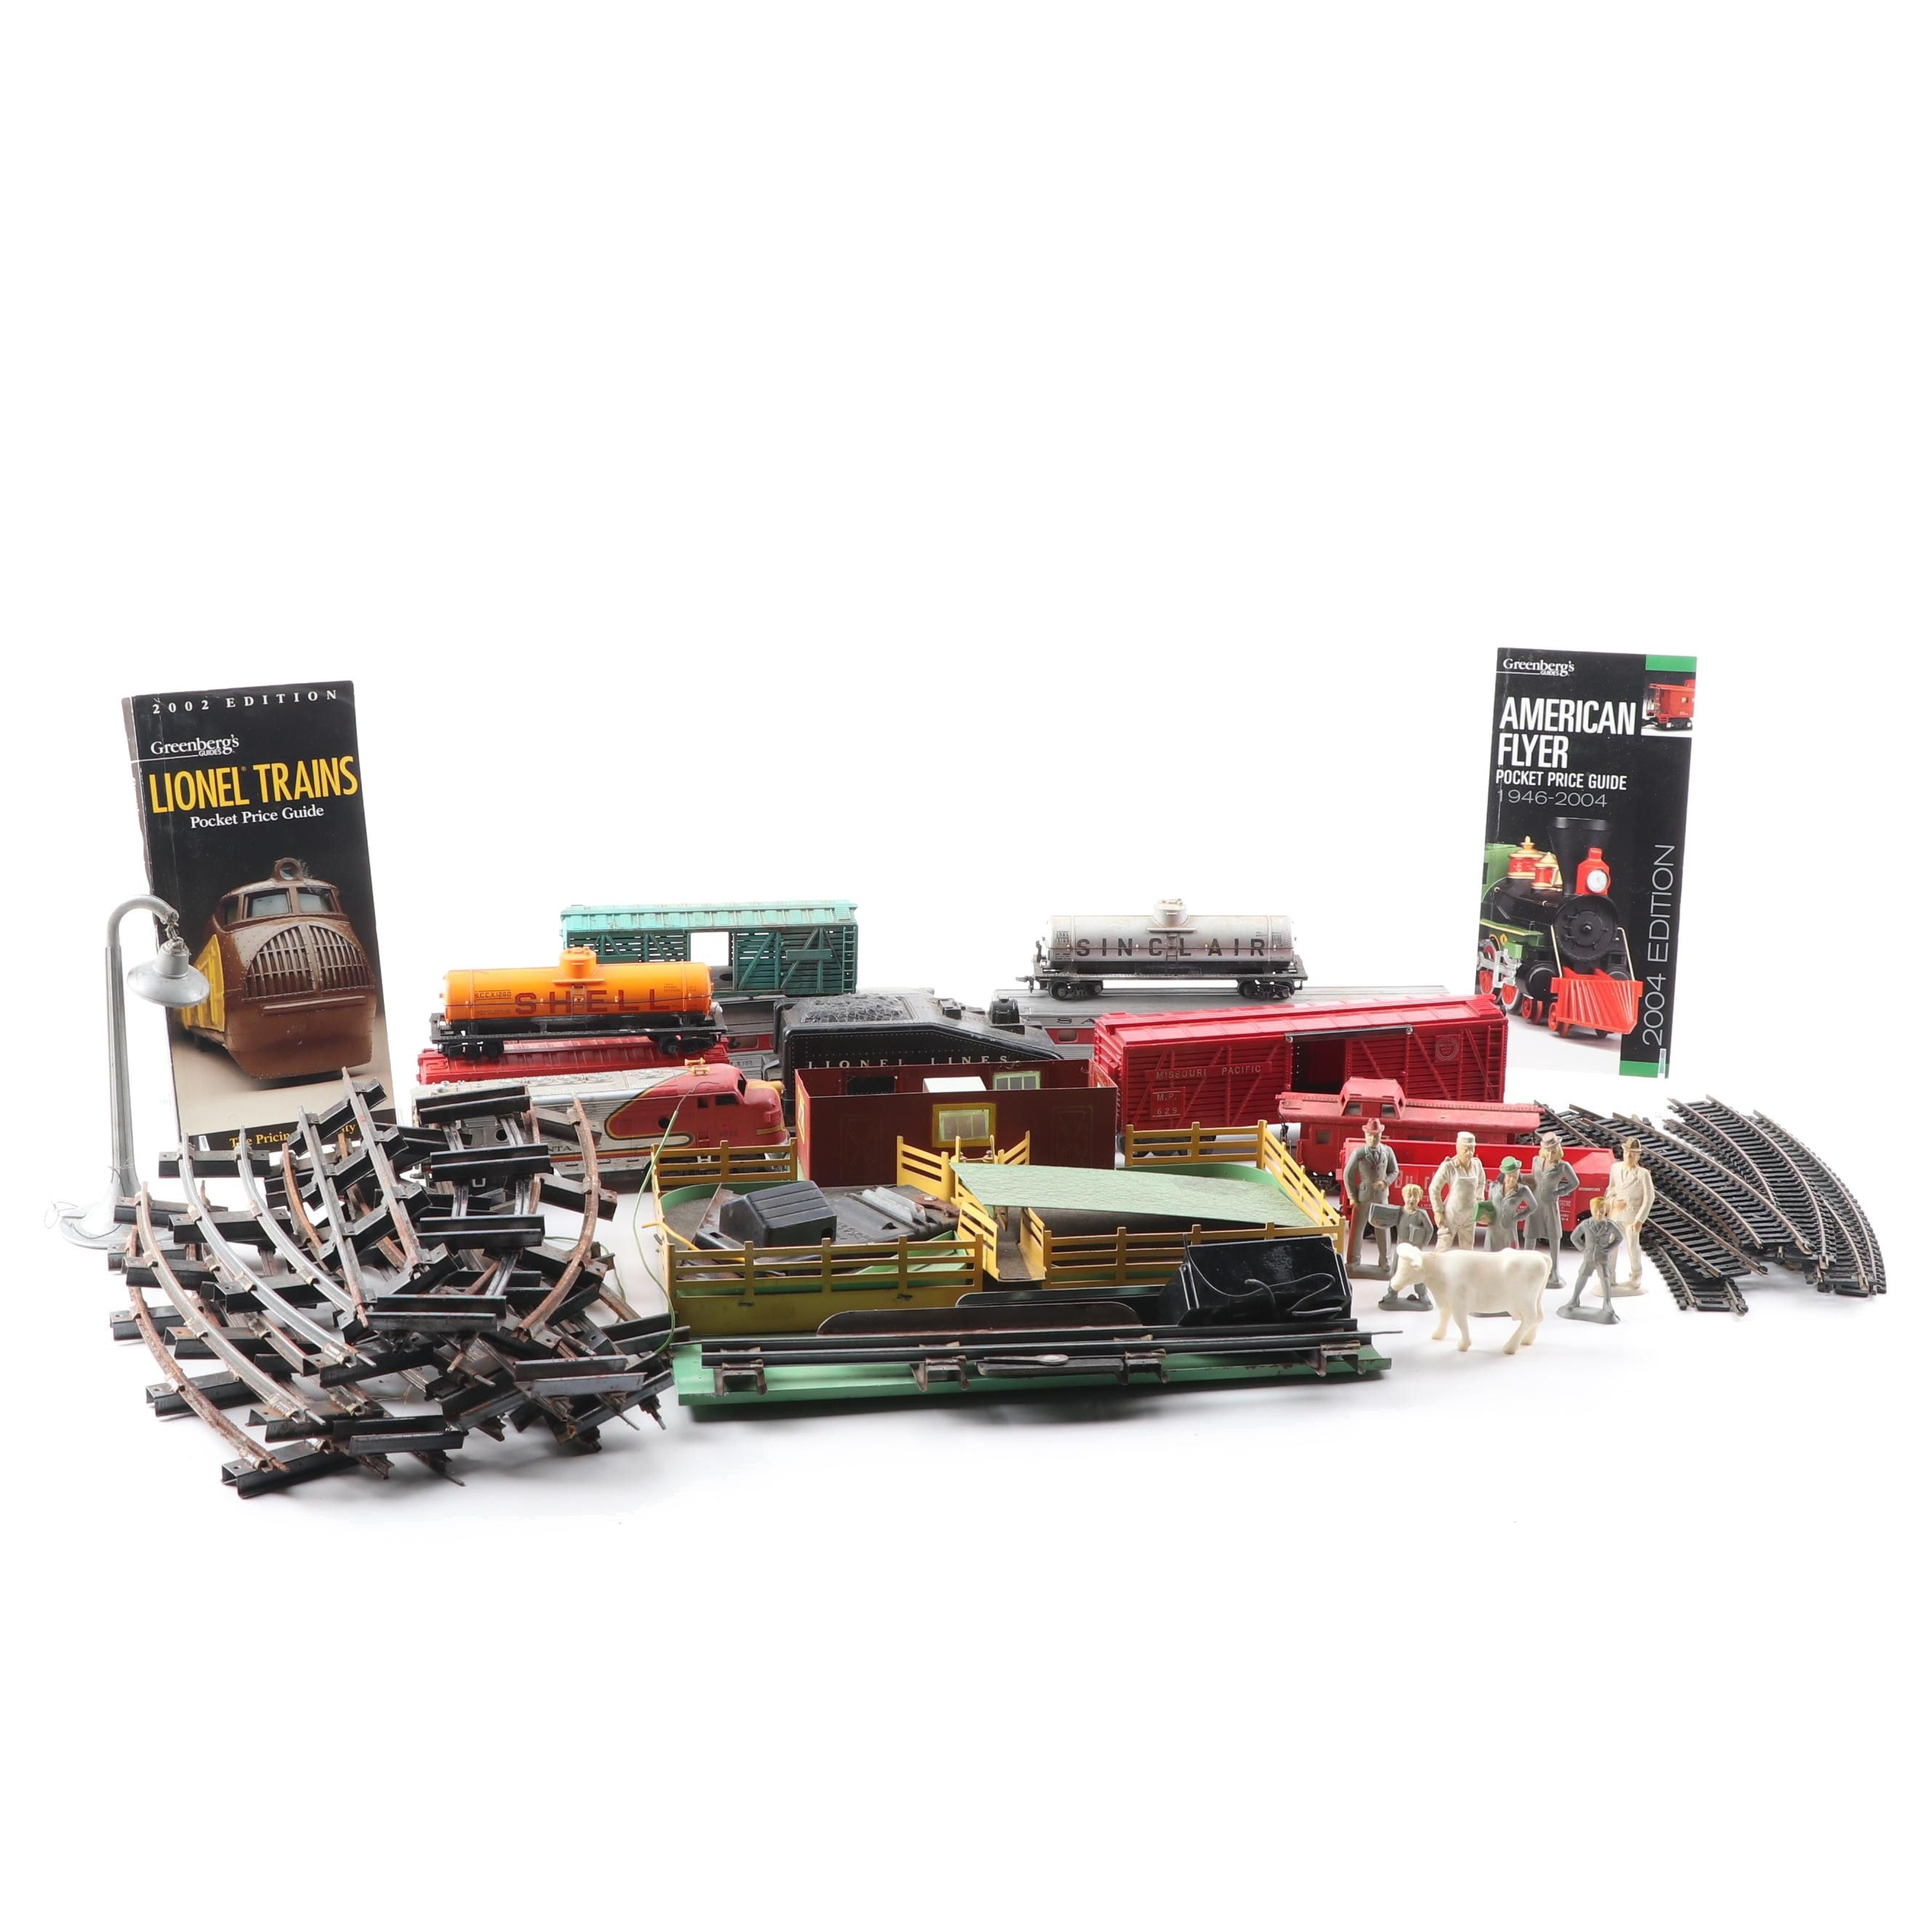 Train Cars and Accessories Including Lionel and American Flyer with Price Guides